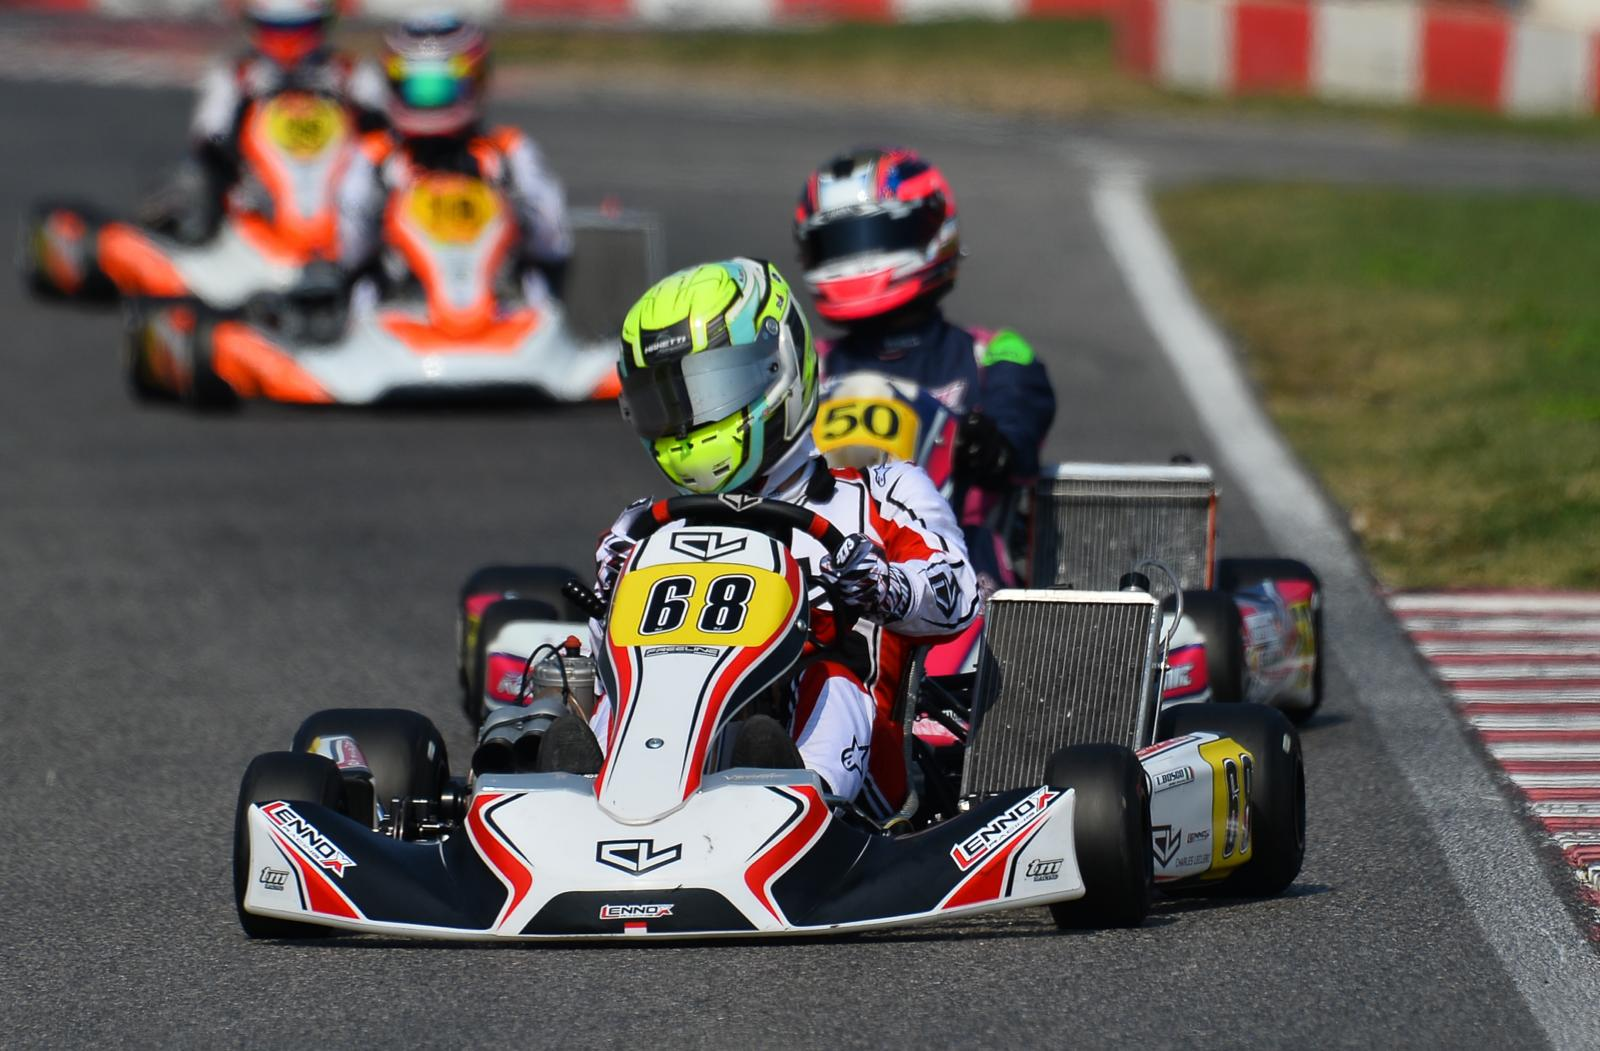 Luca Bosco will be present at the International Super Cup KZ2